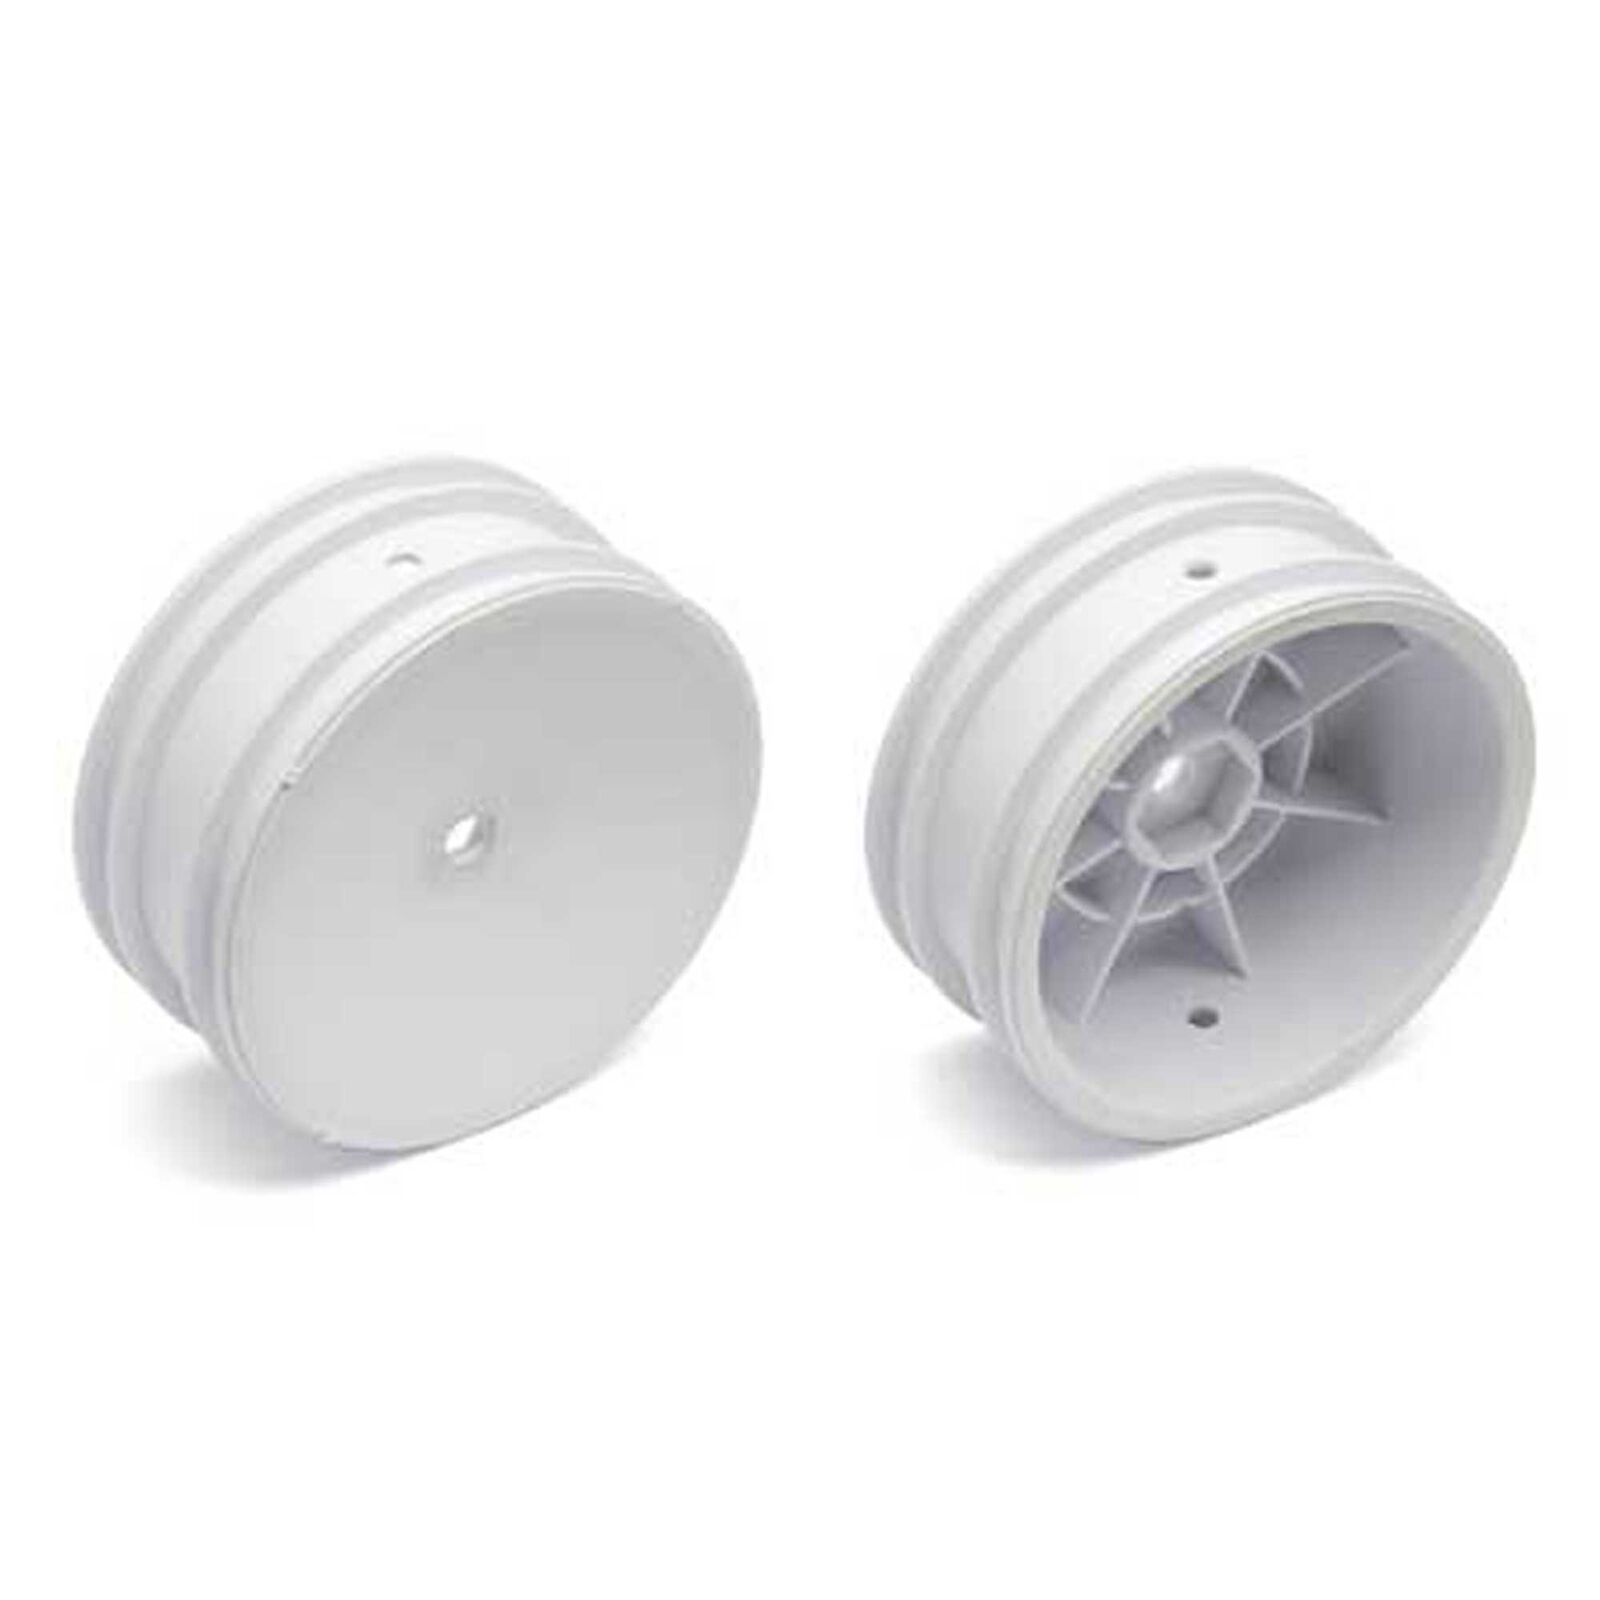 1/10 Front 12mm Hex Wheels, White (2): Buggy